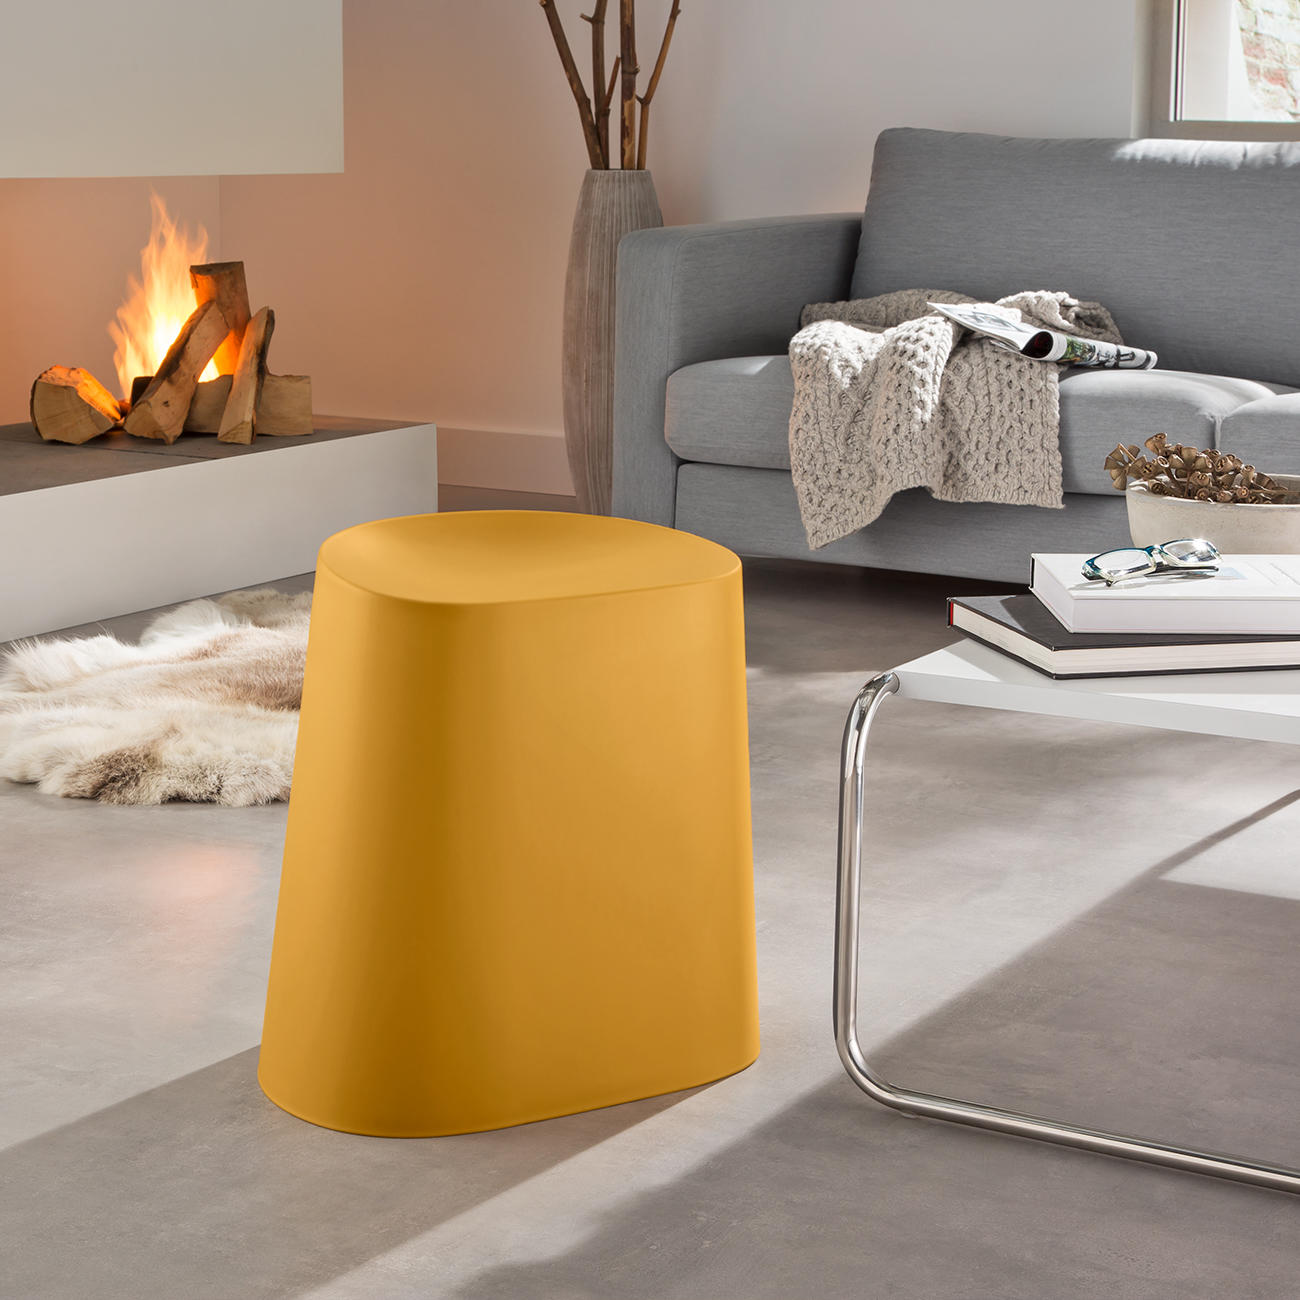 Sensational Relish Stool 3 Jahre Garantie Pro Idee Gmtry Best Dining Table And Chair Ideas Images Gmtryco